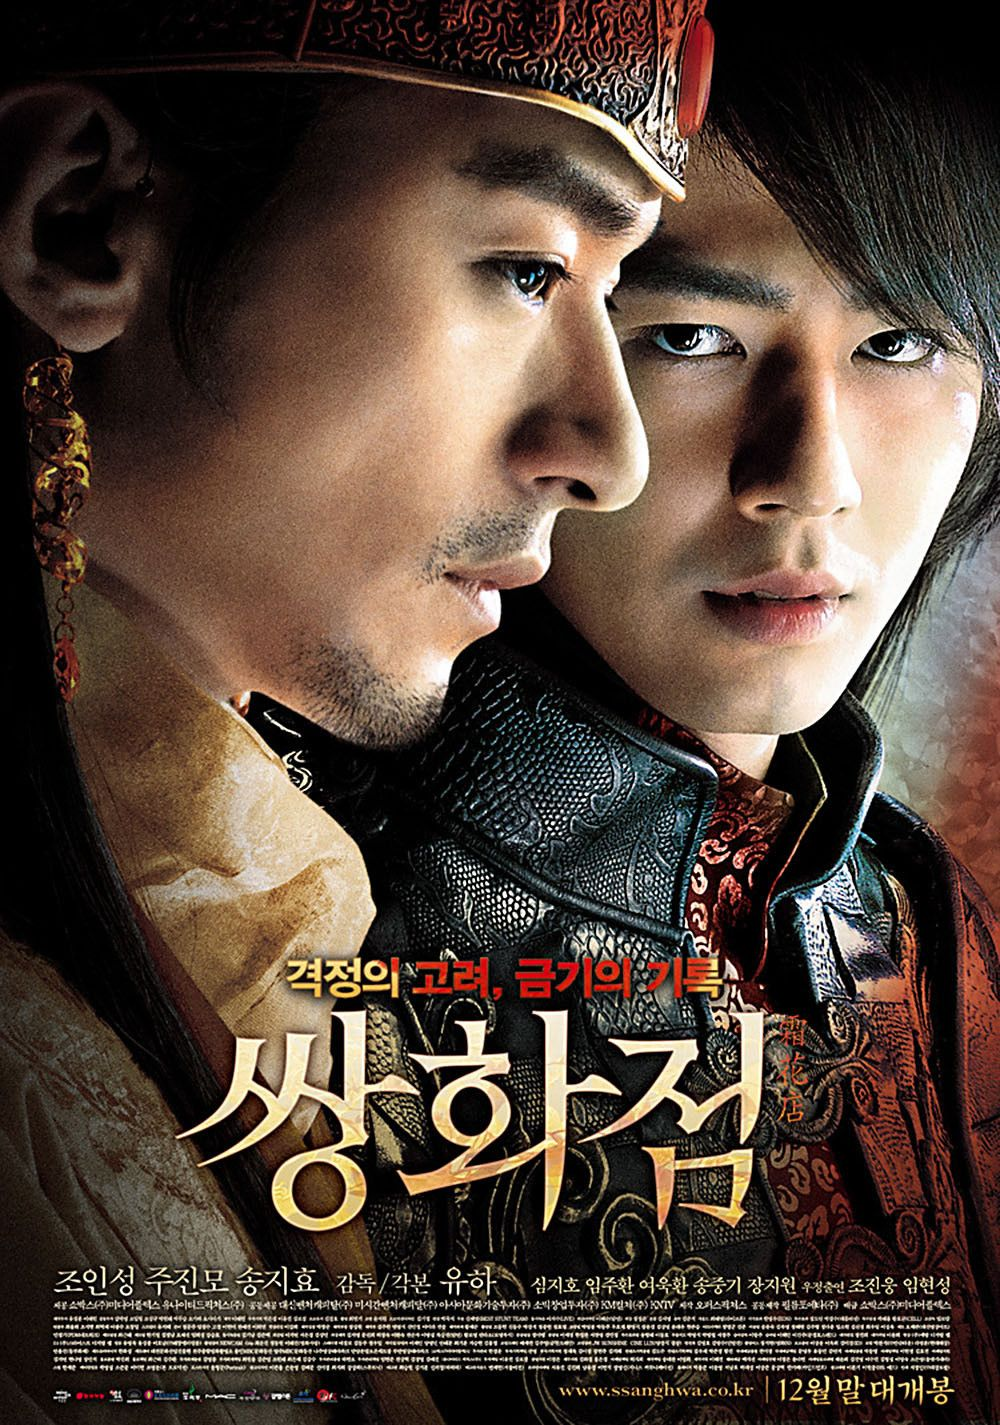 A Frozen Flower Main Characters Jo In Sung And Ju Jin Mo The Lover Is Prettier But The King Is Much More Inte A Frozen Flower Korean Drama Movies Jo In Sung